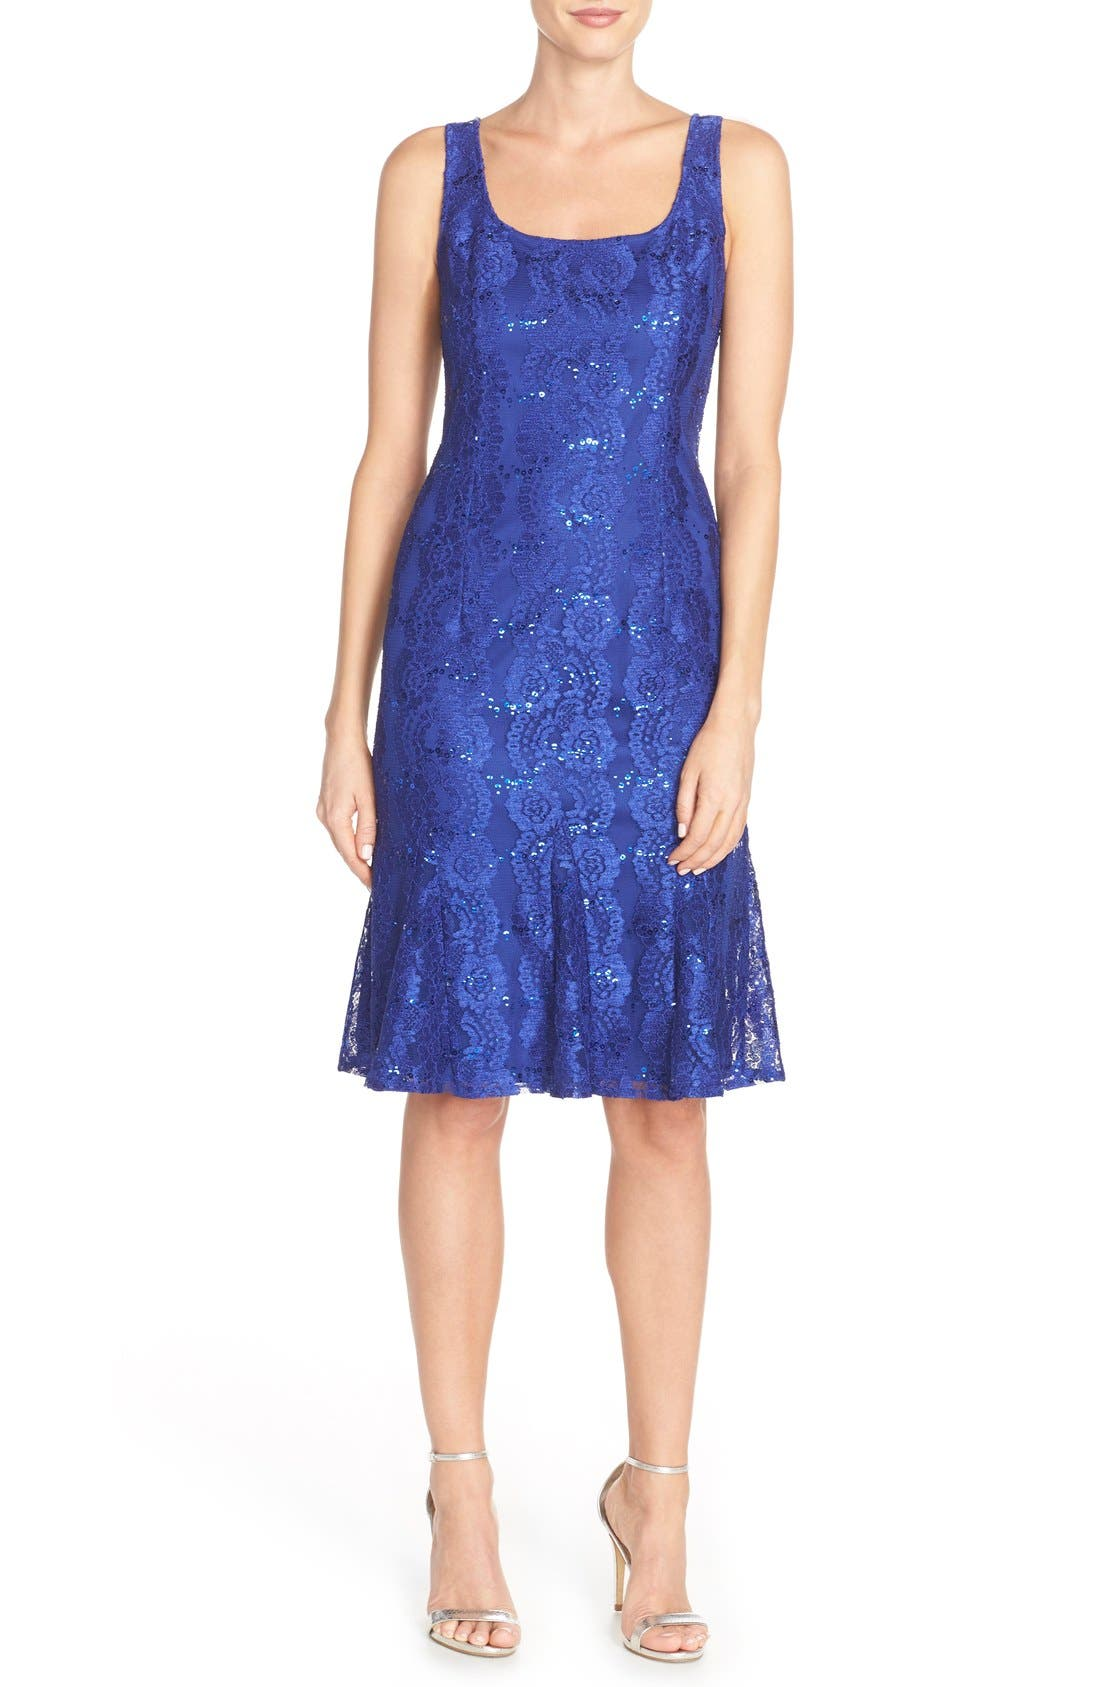 Alternate Image 1 Selected - Alex Evenings Embellished Lace Fit & Flare Dress with Jacket